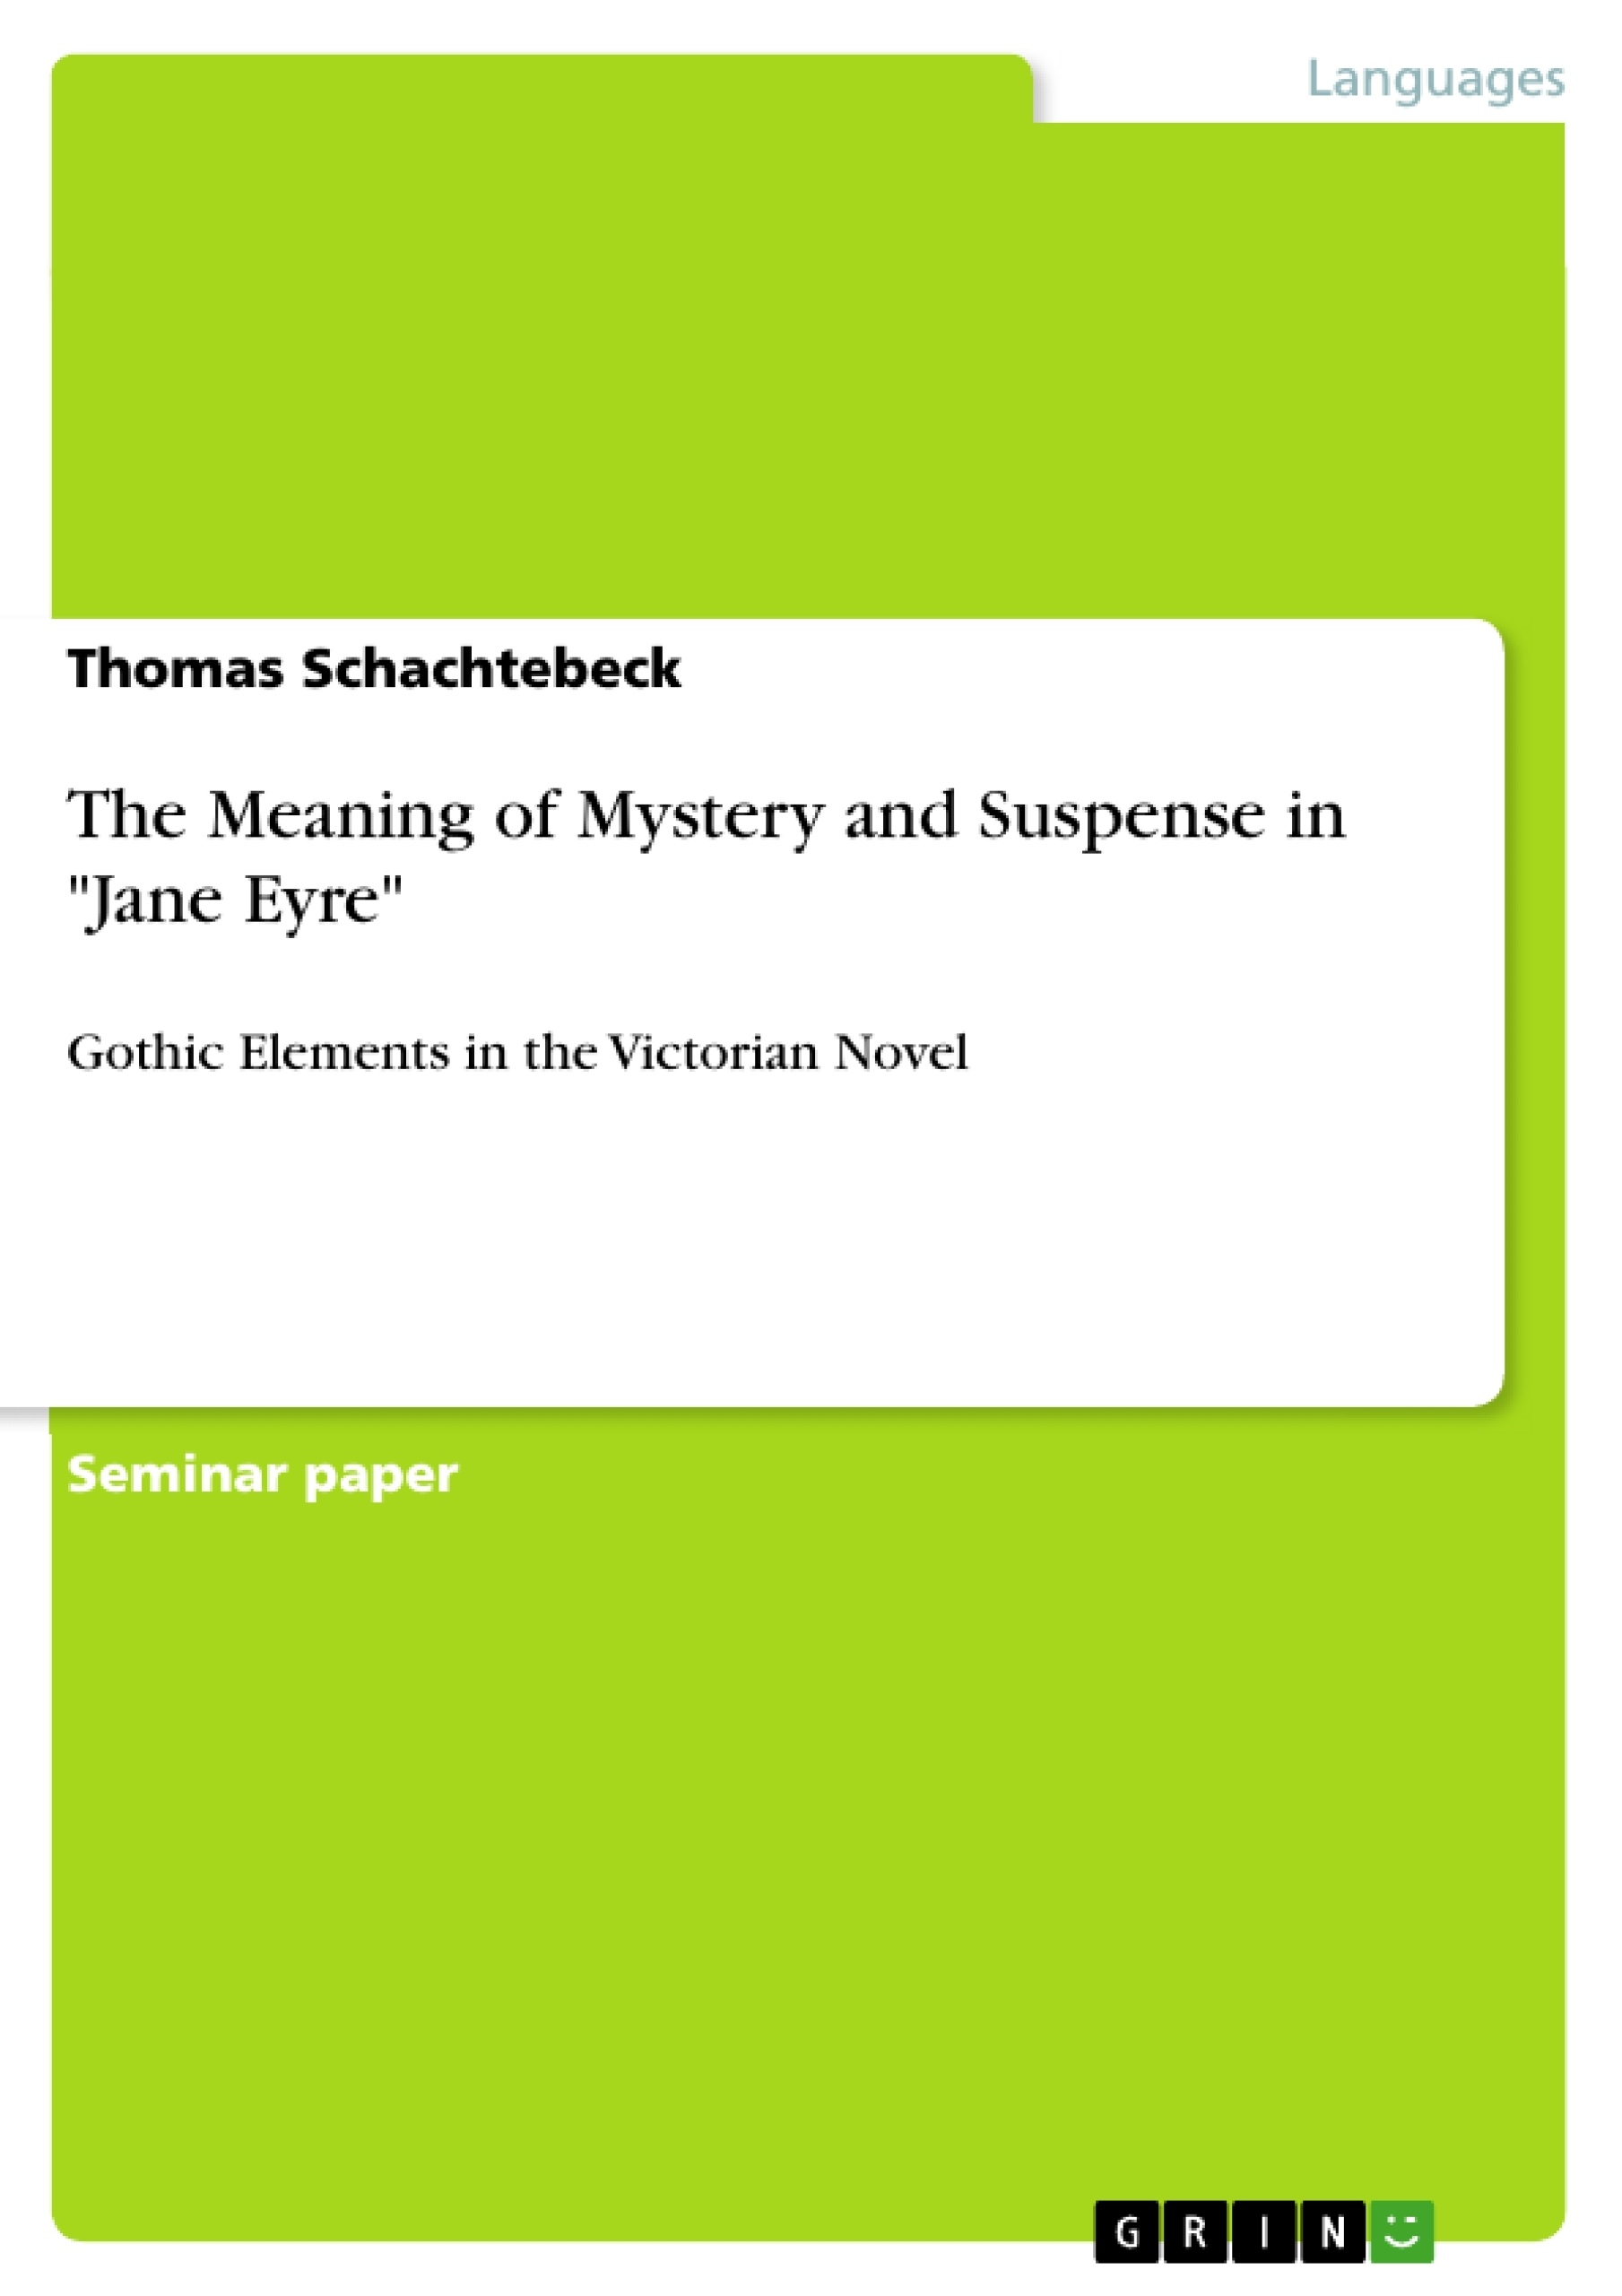 the meaning of mystery and suspense in jane eyre publish your upload your own papers earn money and win an iphone 7